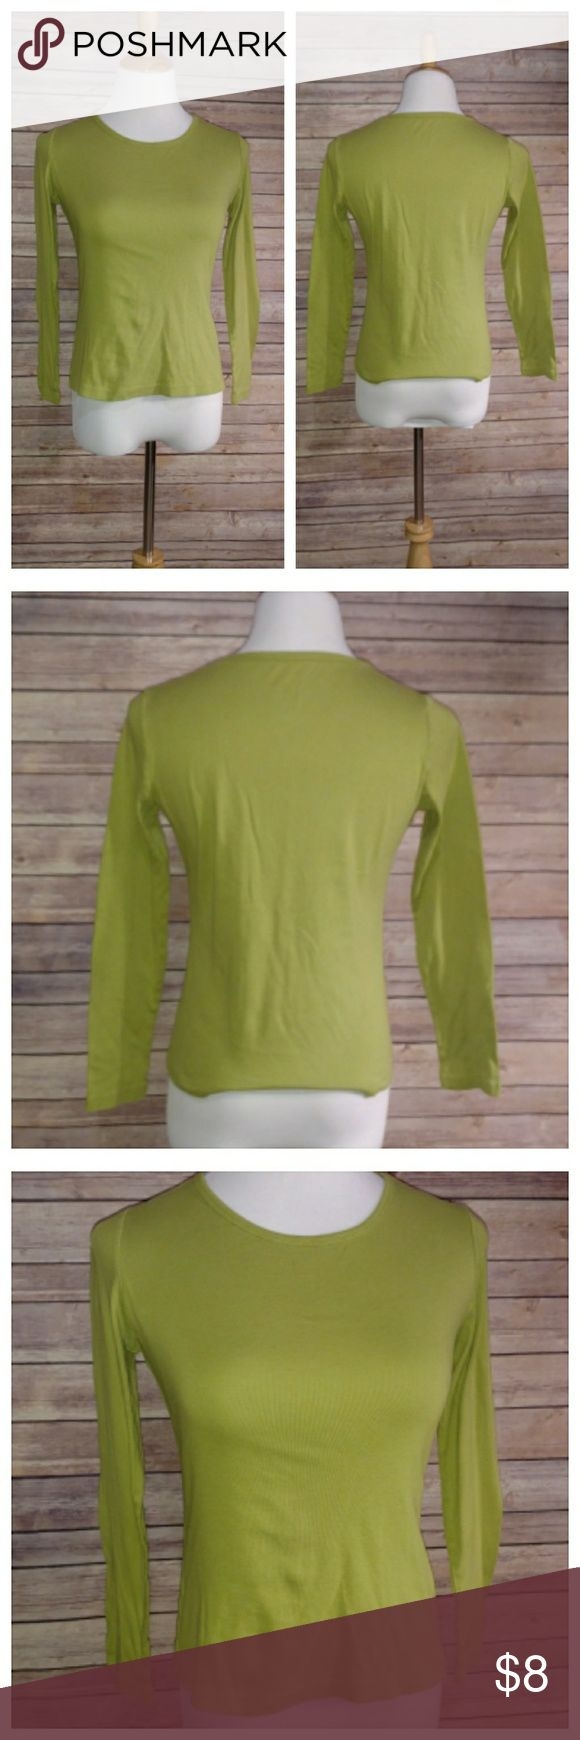 Green Long Sleeve top St. John's Bay.   Size: small petite Light green, lime green.   Comfortable and casual. Great under vests too. St. John's Bay Tops Tees - Long Sleeve